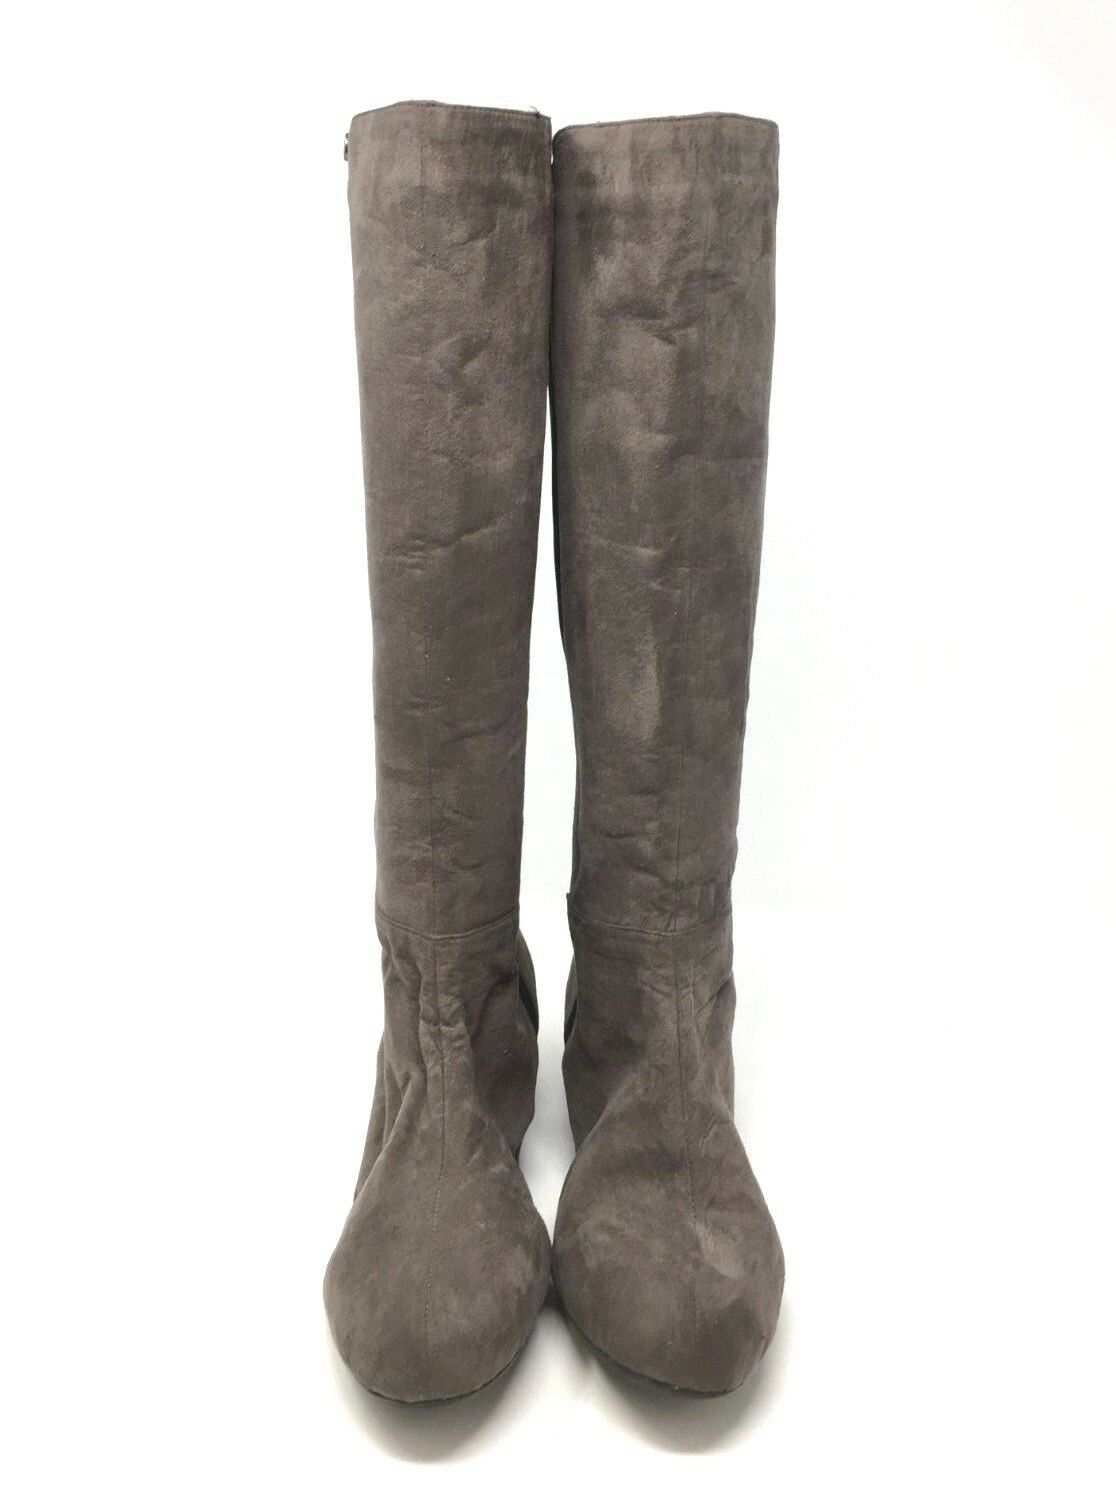 J.Renee Women's Valik Valik Valik Grey Knee High Wedge Boots size  9 W fd0b48